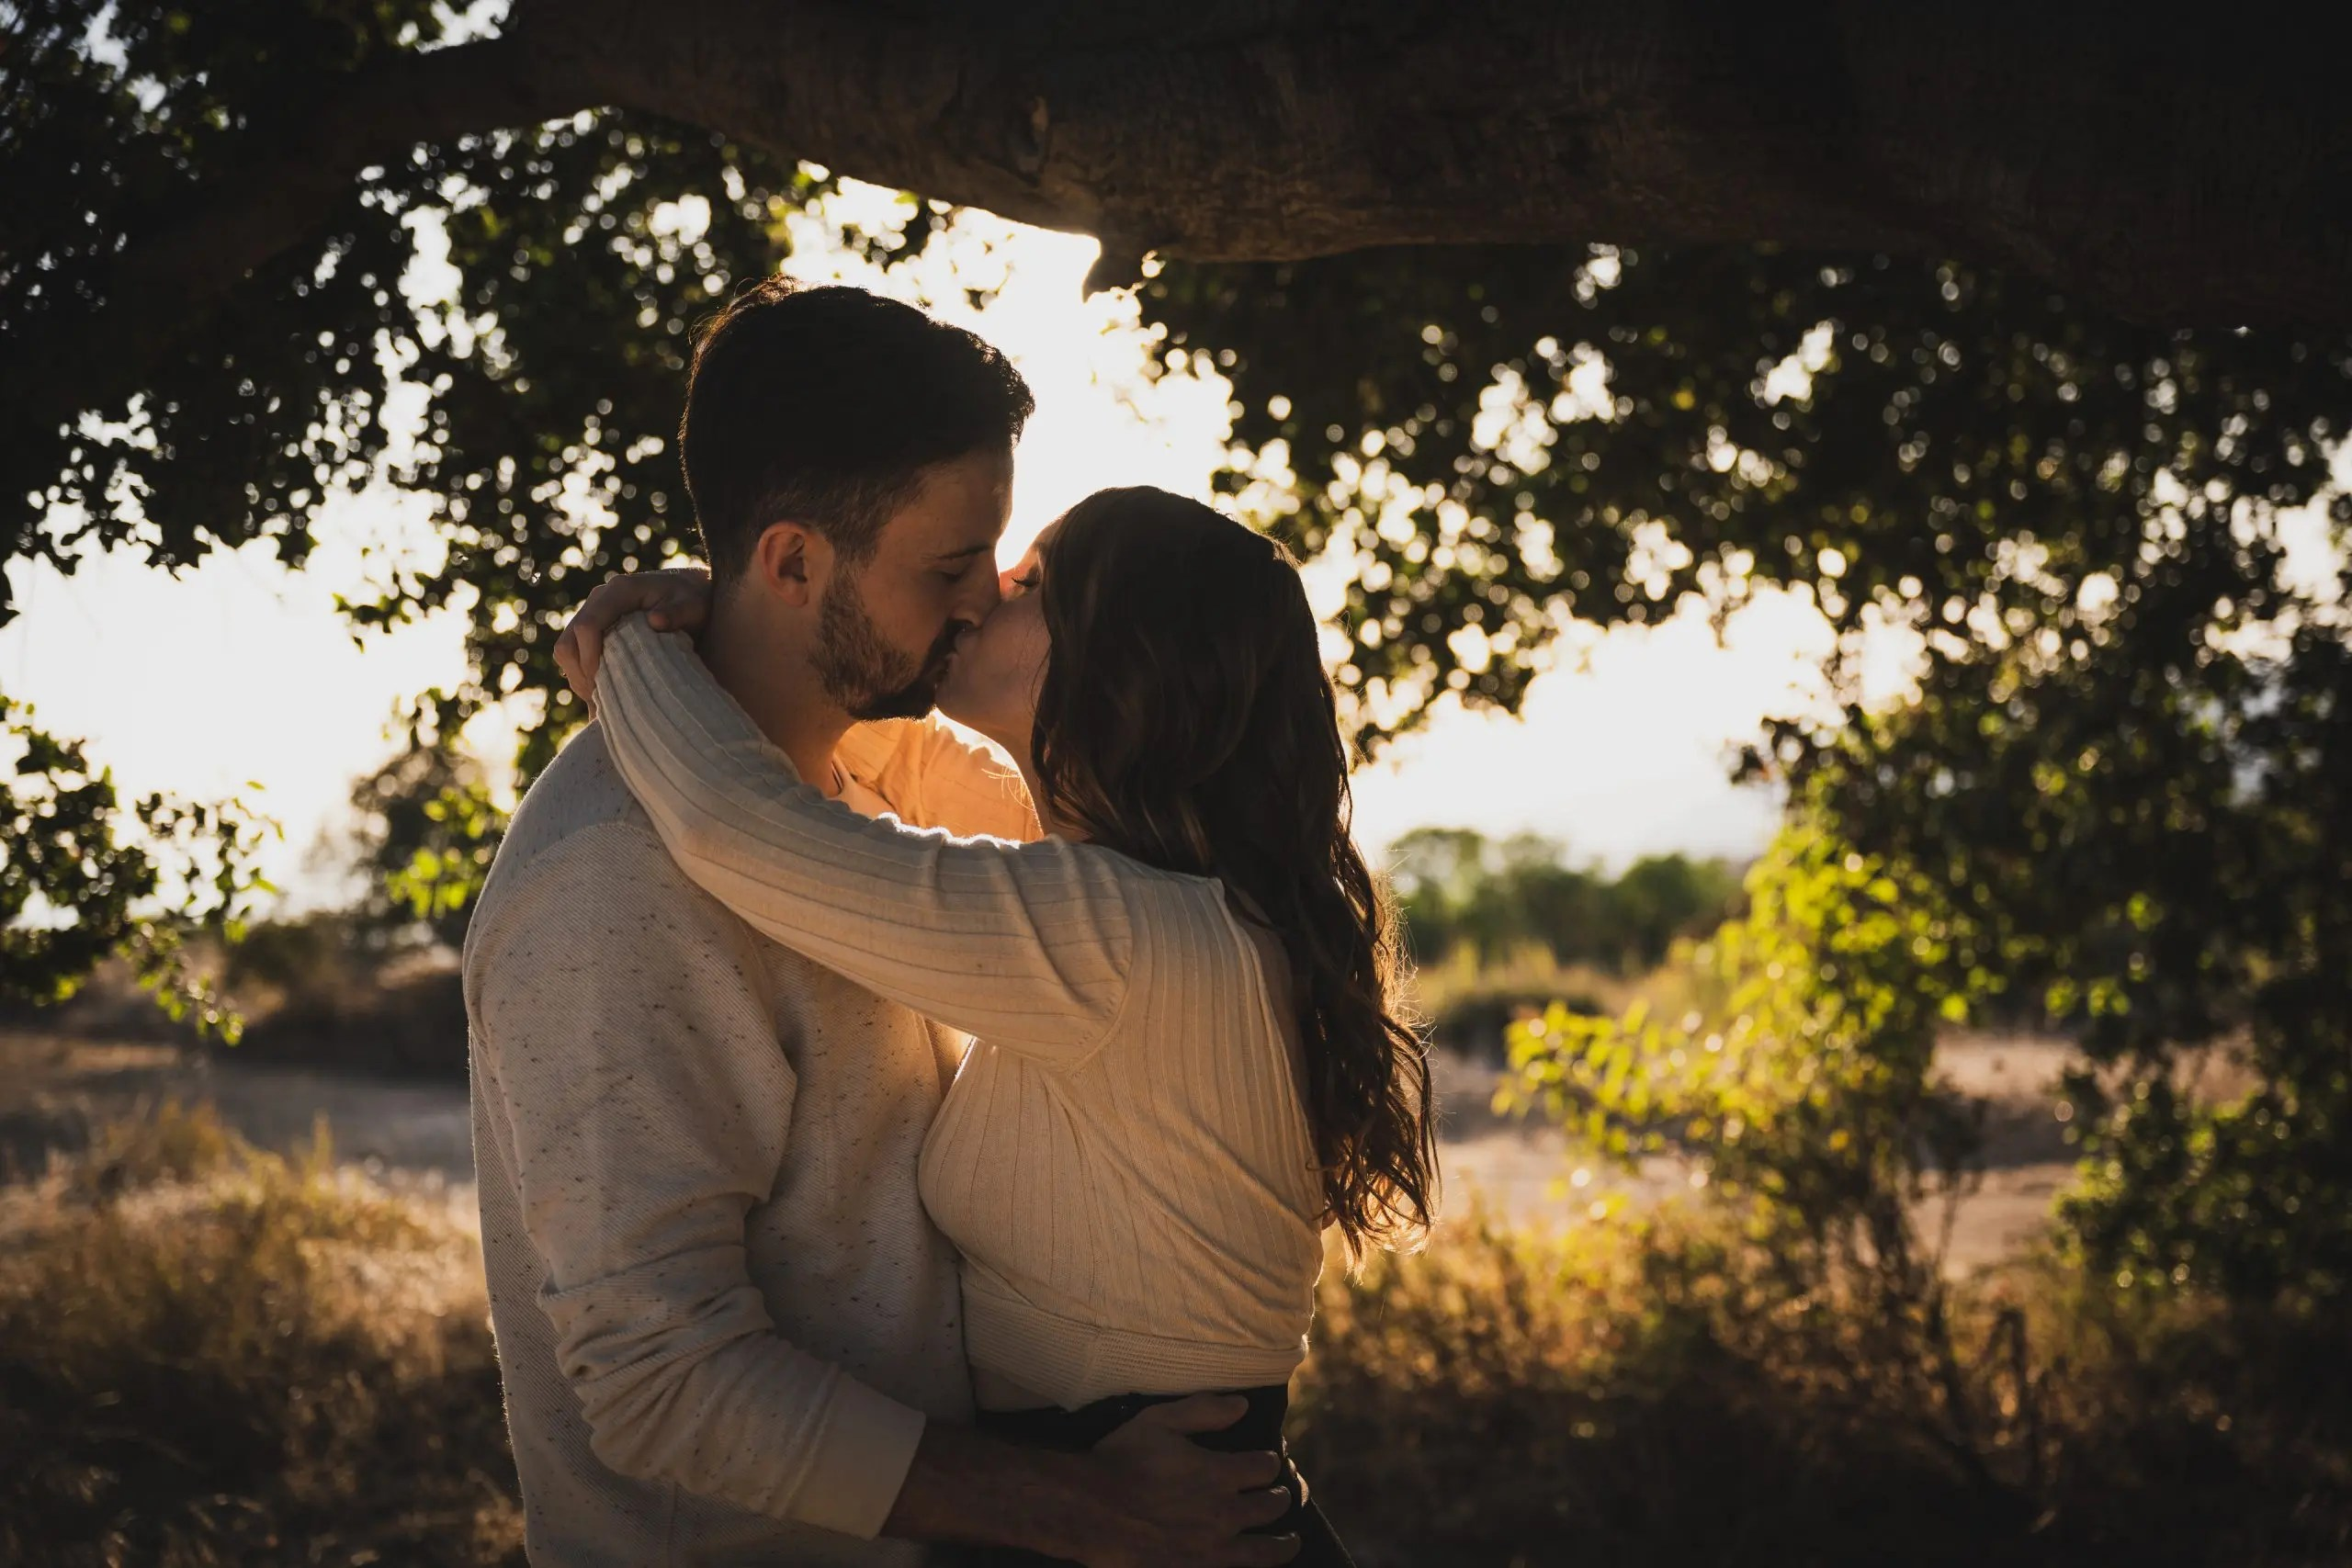 Couple kissing in front of trees outdoors.